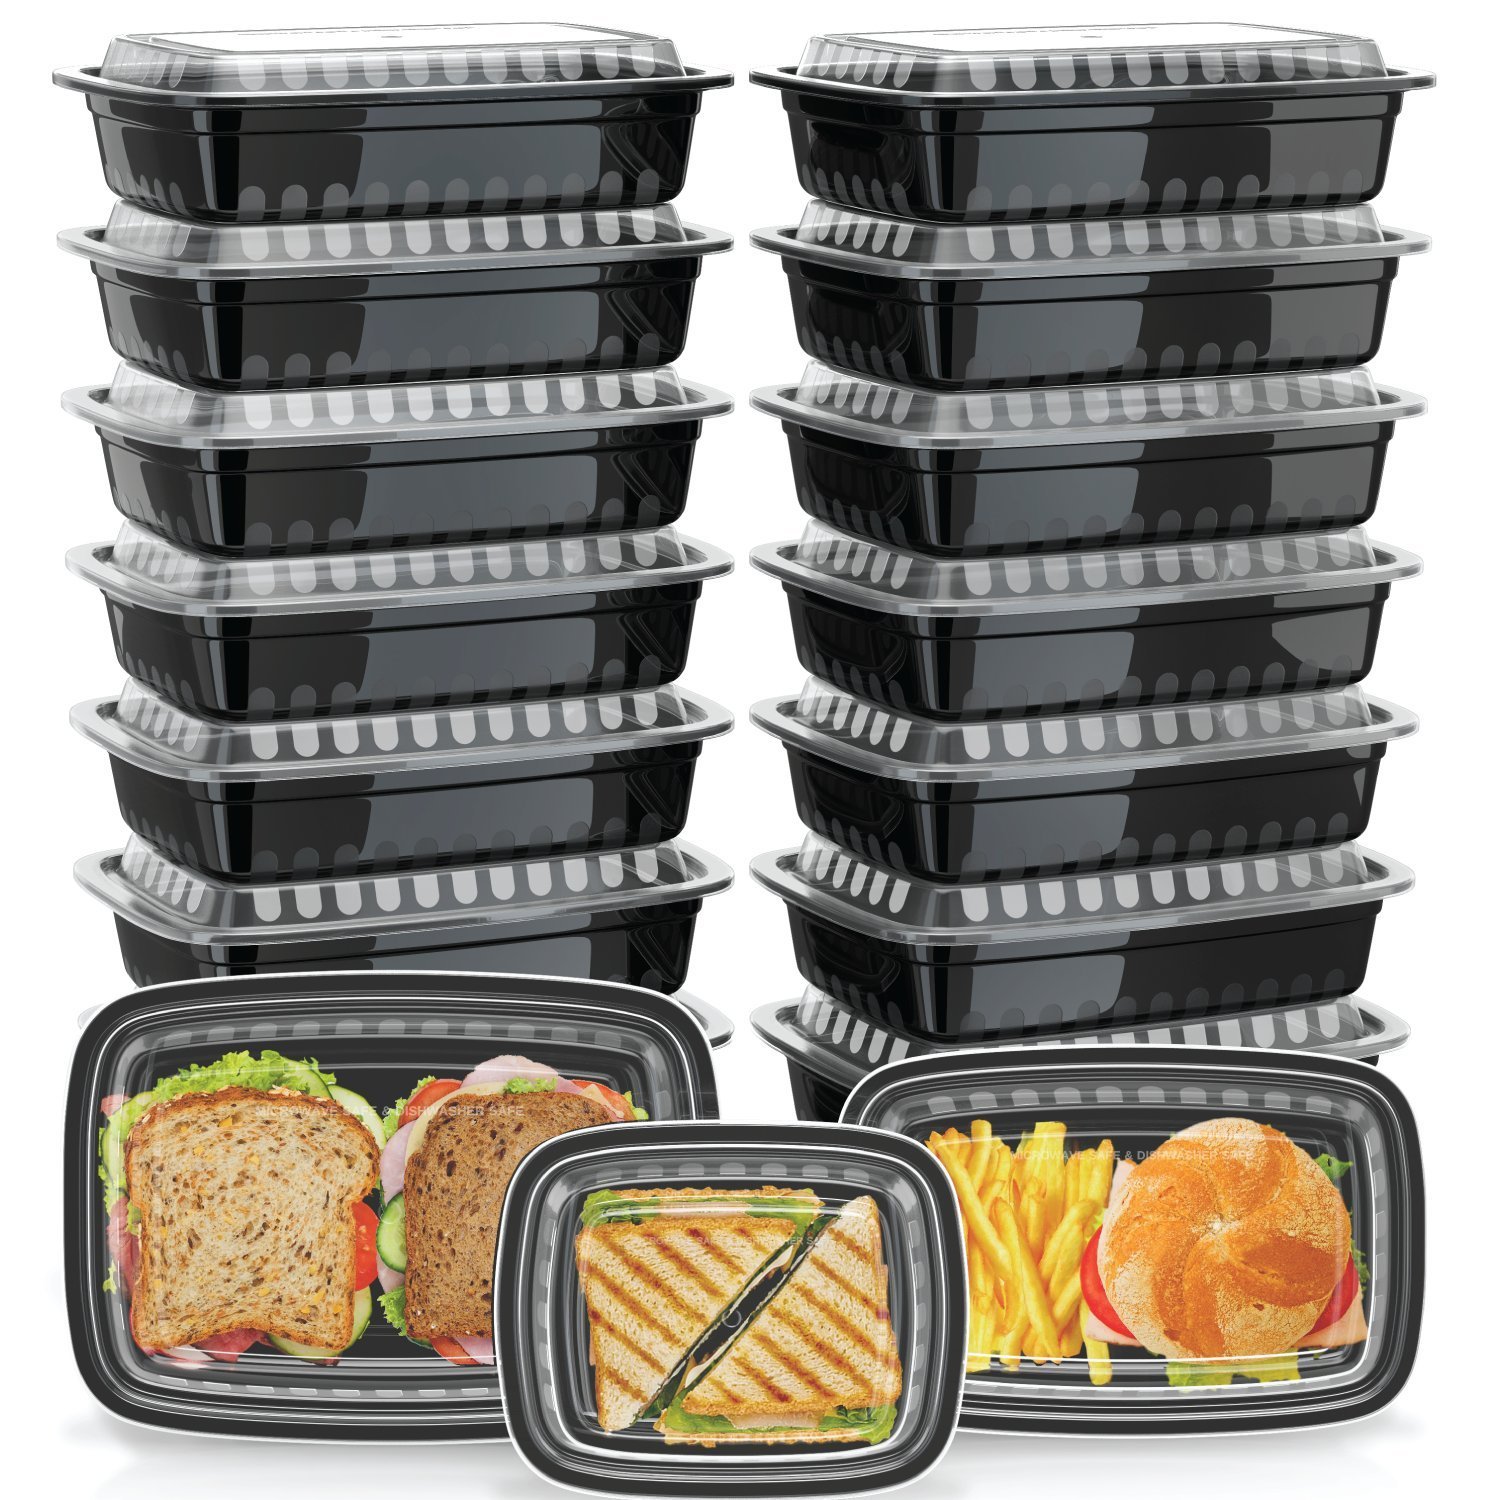 Green Label [30 Pack] Assorted Meal Prep Containers [3 Sizes] with Lids, for Cooking and Food Storage, Microwavable, Stackable, Dishwasher and Freezer Safe, One Single Compartment, Variety Set, Black